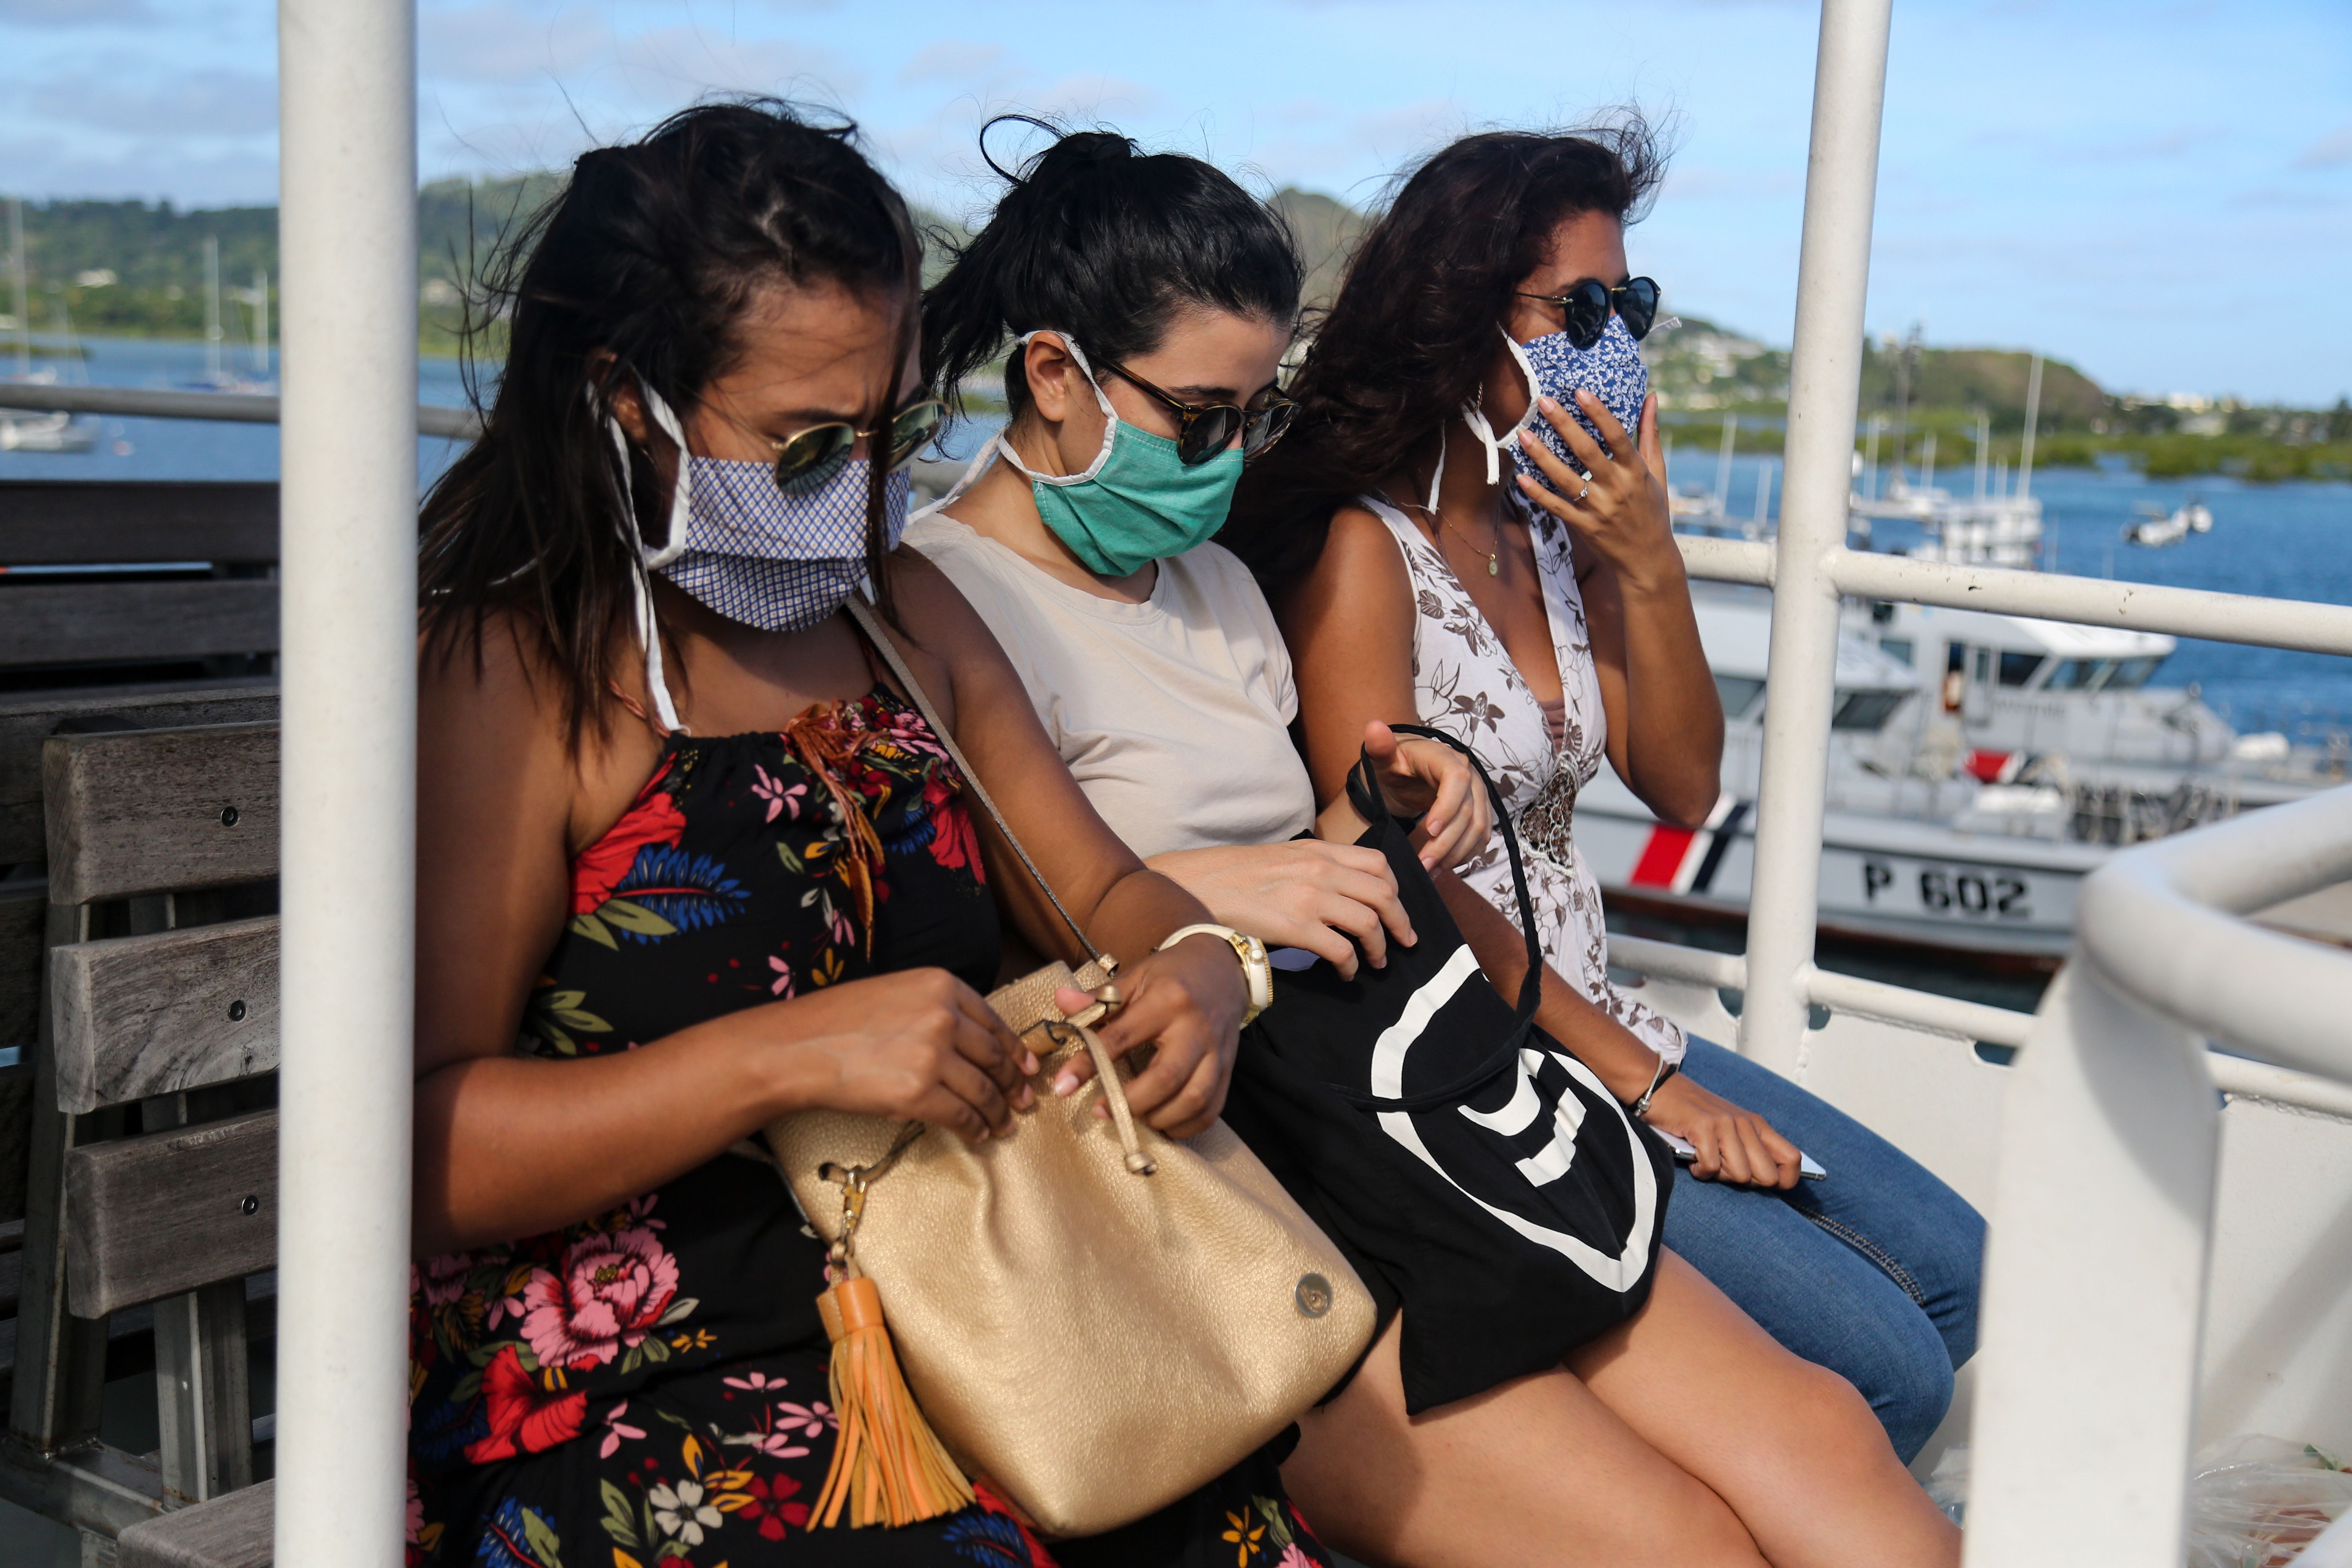 Passengers wearing protective face masks travel by boat to Petite-Terre on the French Indian Ocean island of Mayotte on June 5, 2020, as measures to curb the spread of the COVID-19 (novel coronavirus) are maintained on Mayotte over concerns about the continued spread of the virus there and a fragile health system. (Photo by Ali AL-DAHER / AFP) (Photo by ALI AL-DAHER/AFP via Getty Images)